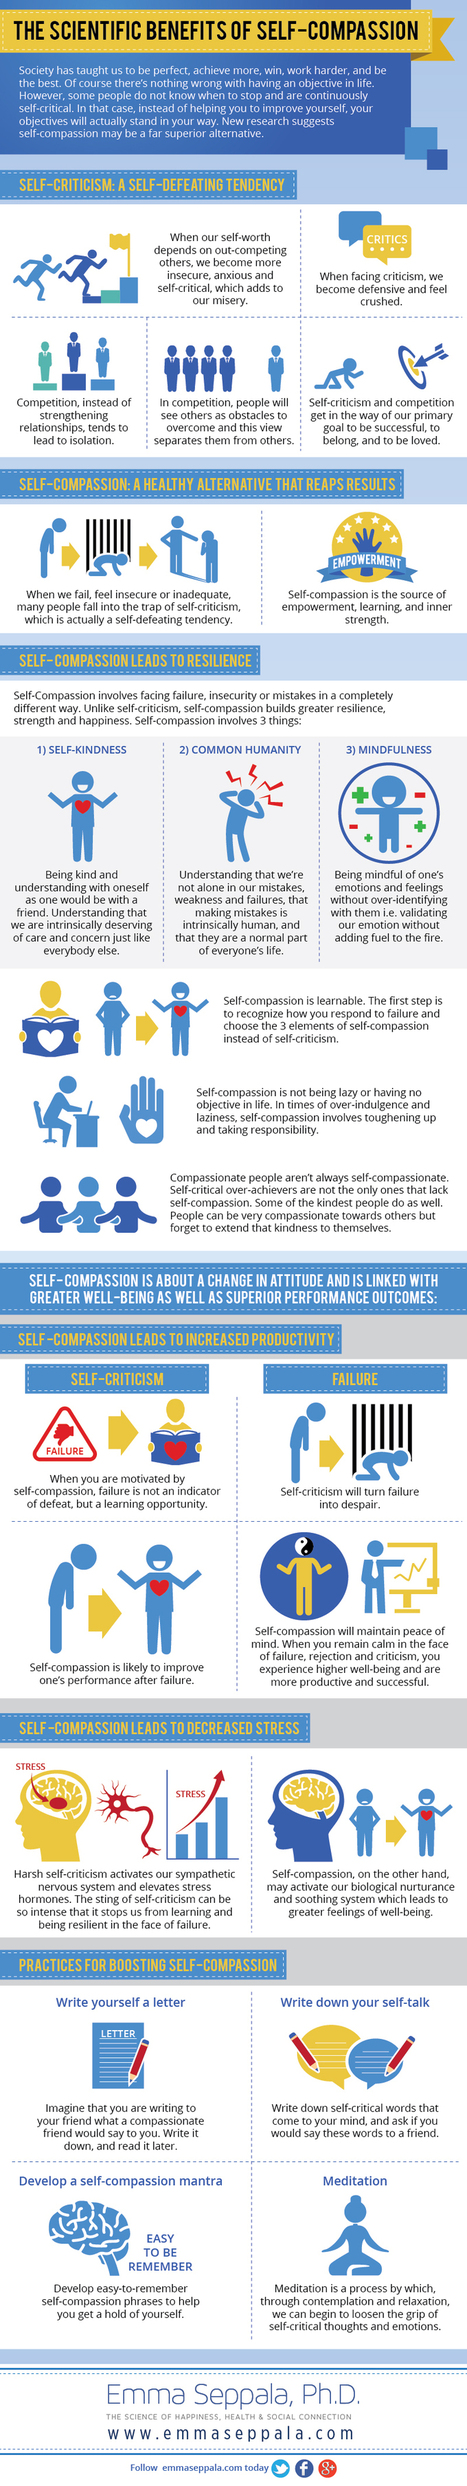 The Scientific Benefits of Self-Compassion -INFOGRAPHIC | Self-Empathy | Scoop.it